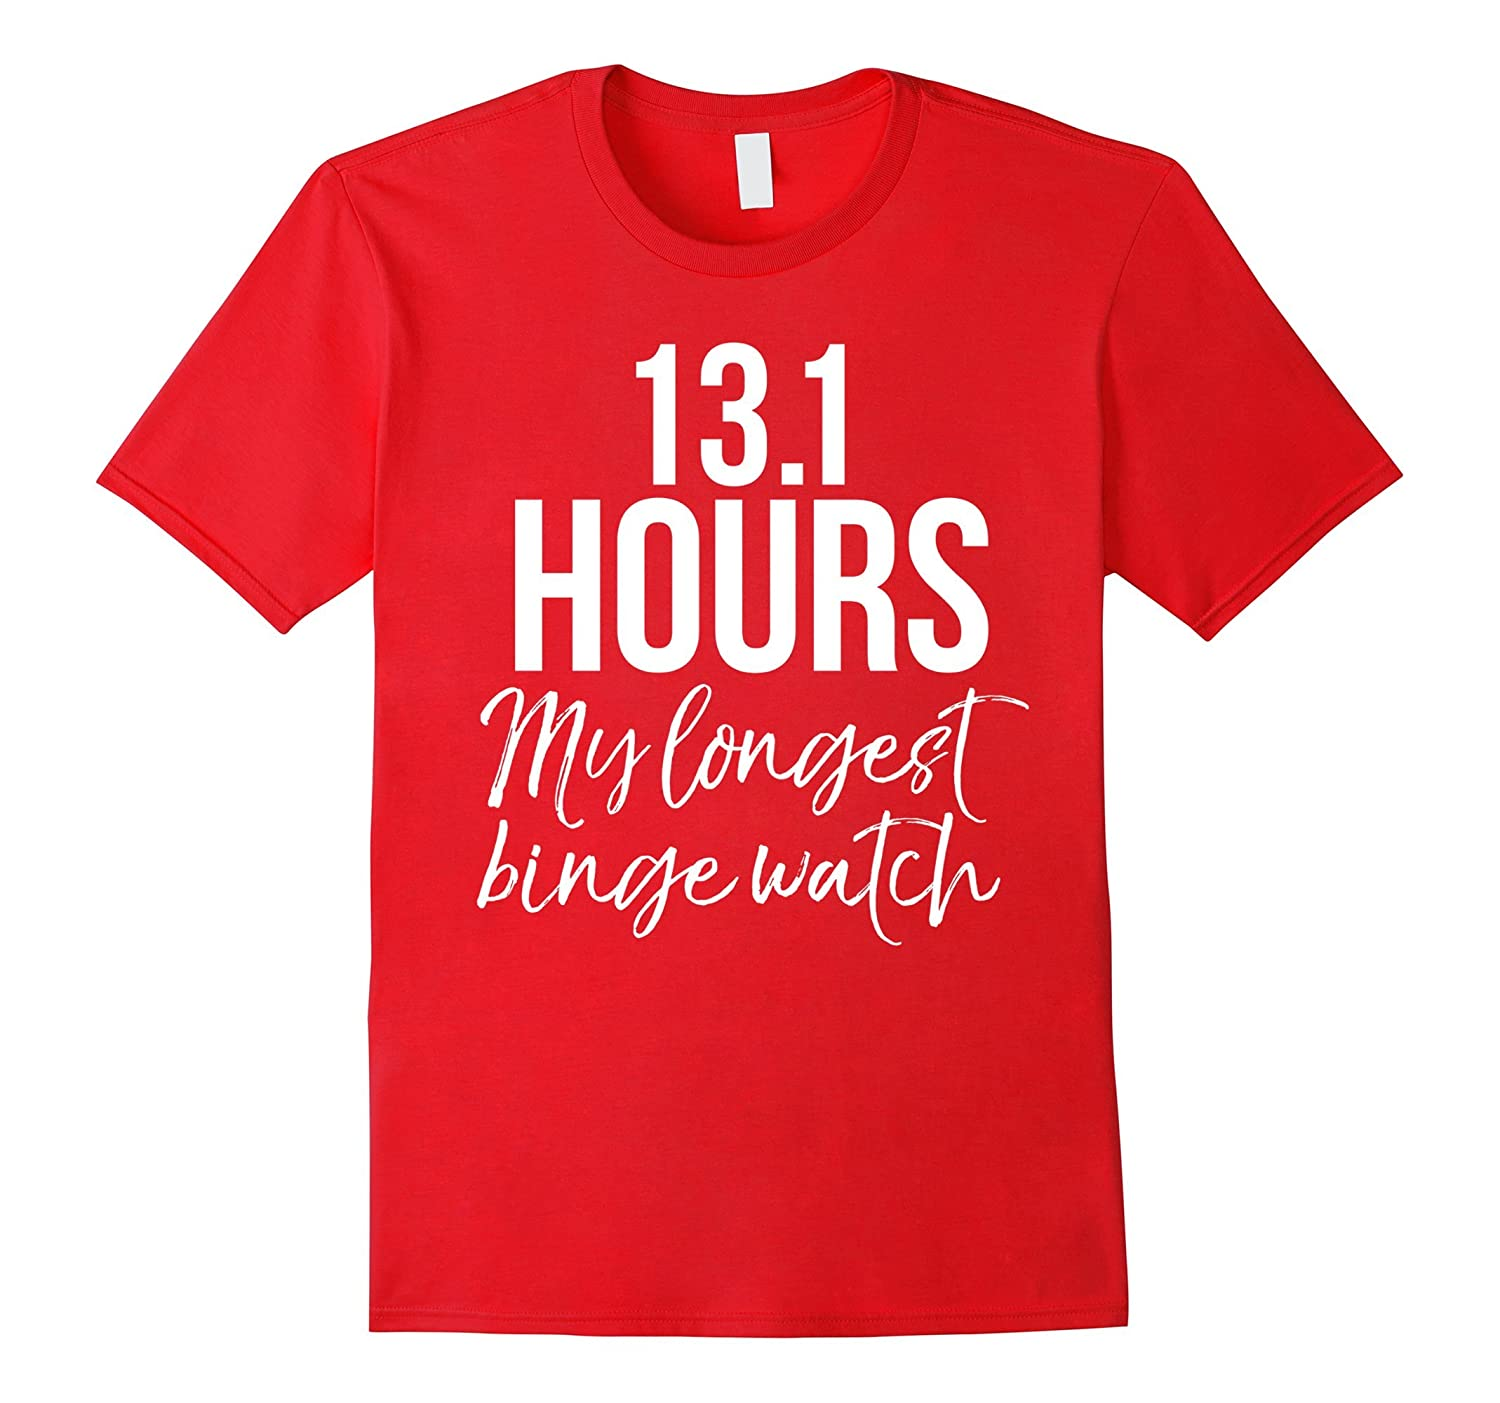 13.1 Hours My Longest Binge Watch Shirt Funny Marathon Tee-Art